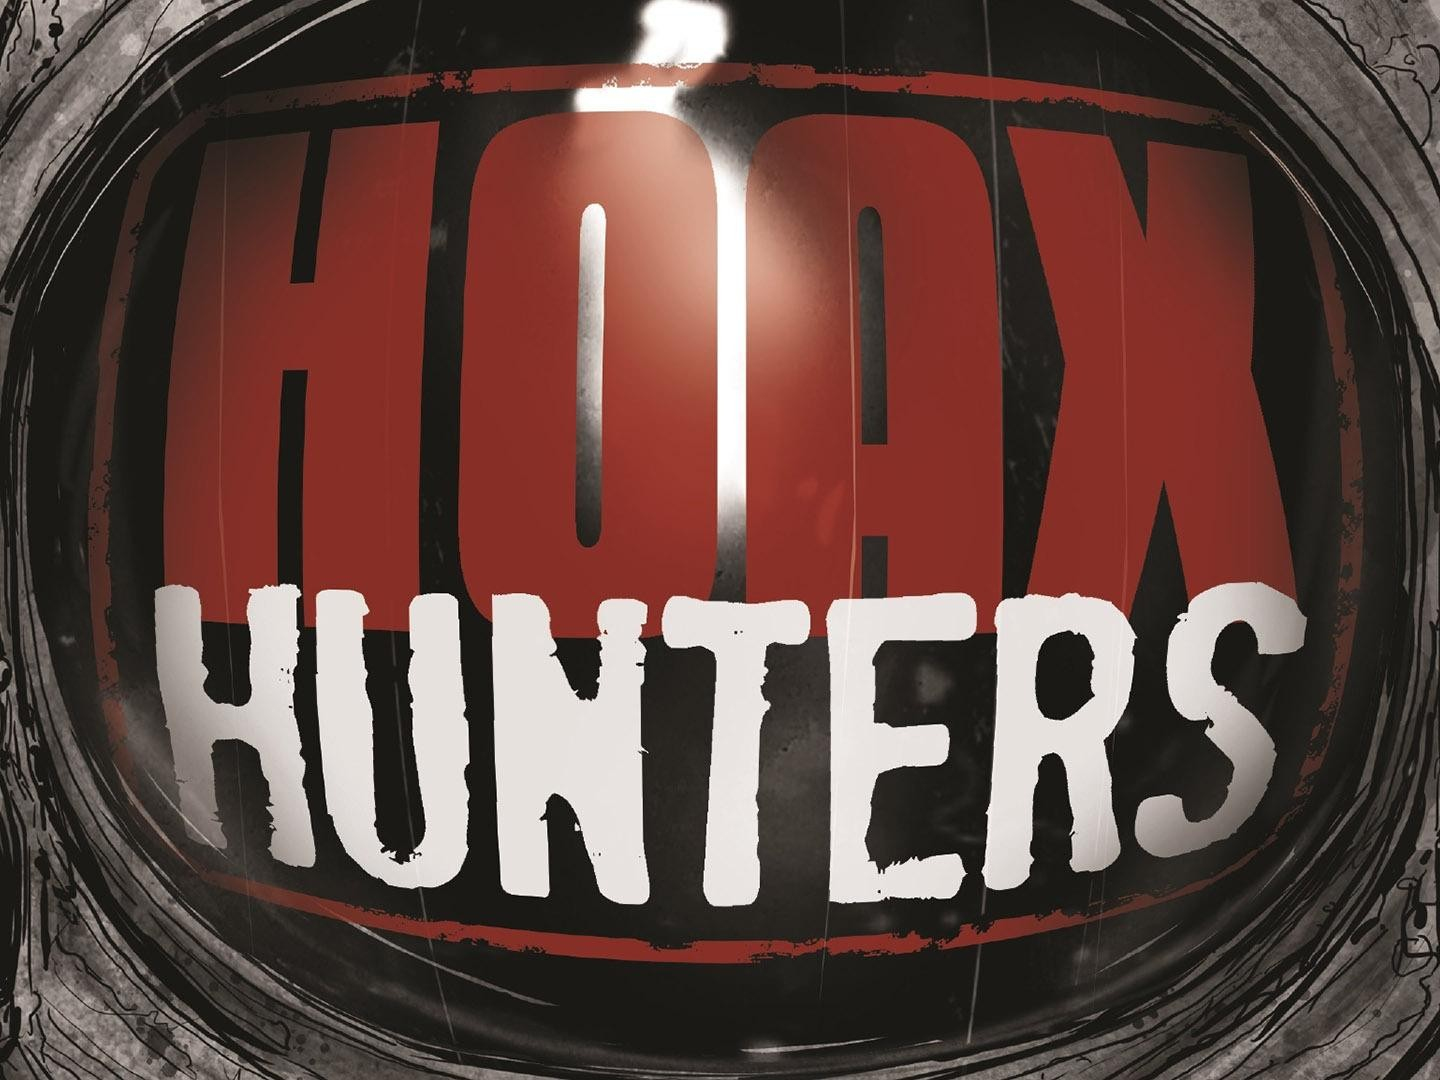 1440x1080 - Hoax Hunters Wallpapers 5